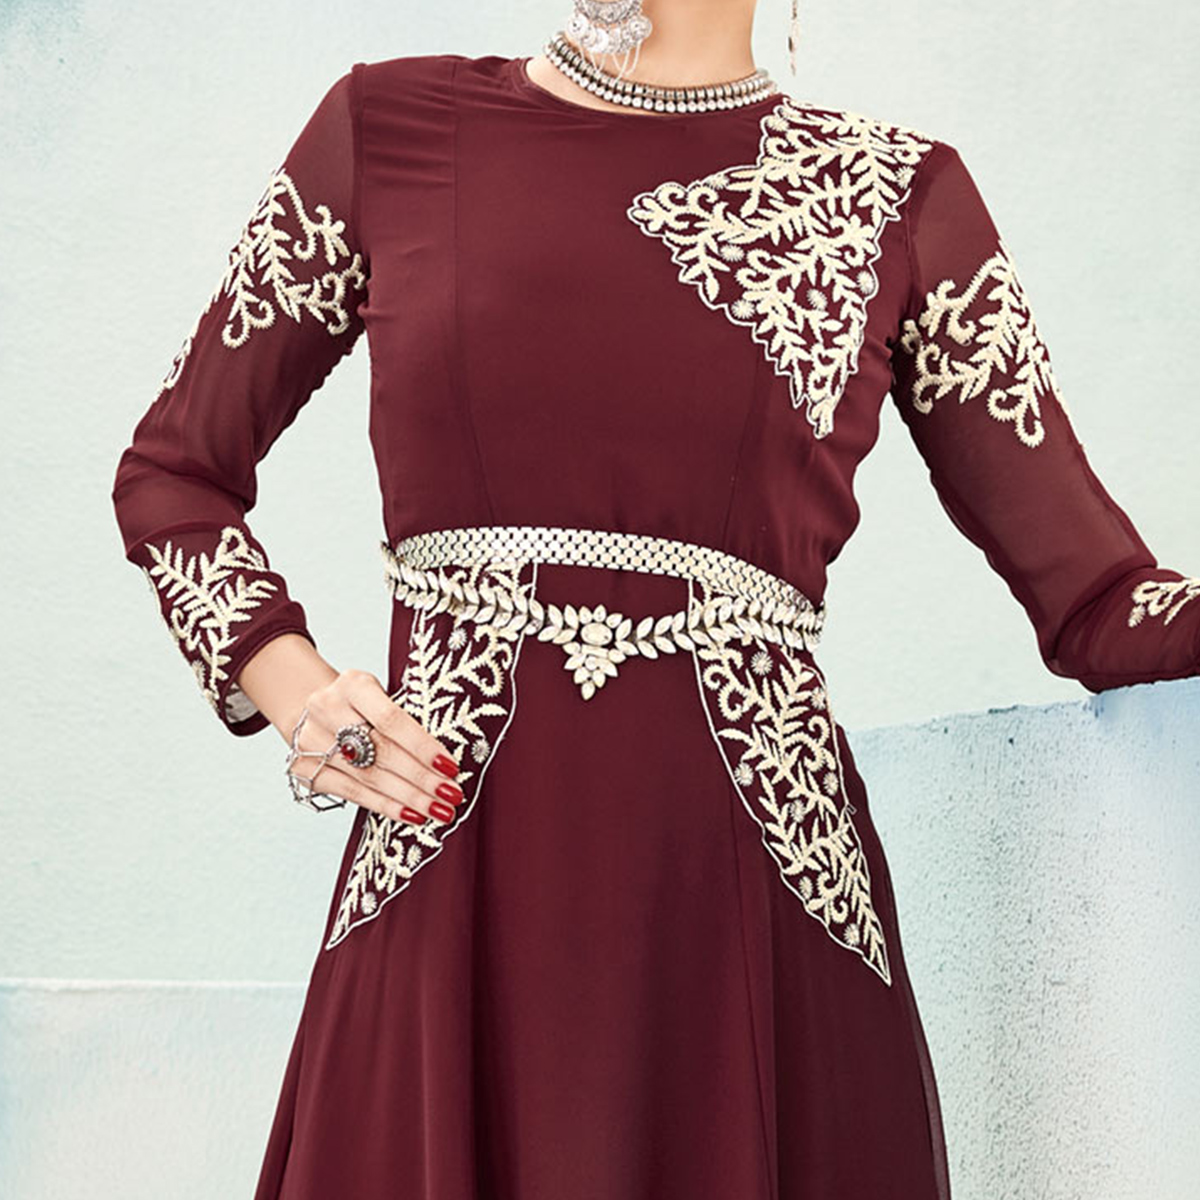 Adorable Maroon Georgette Tunic